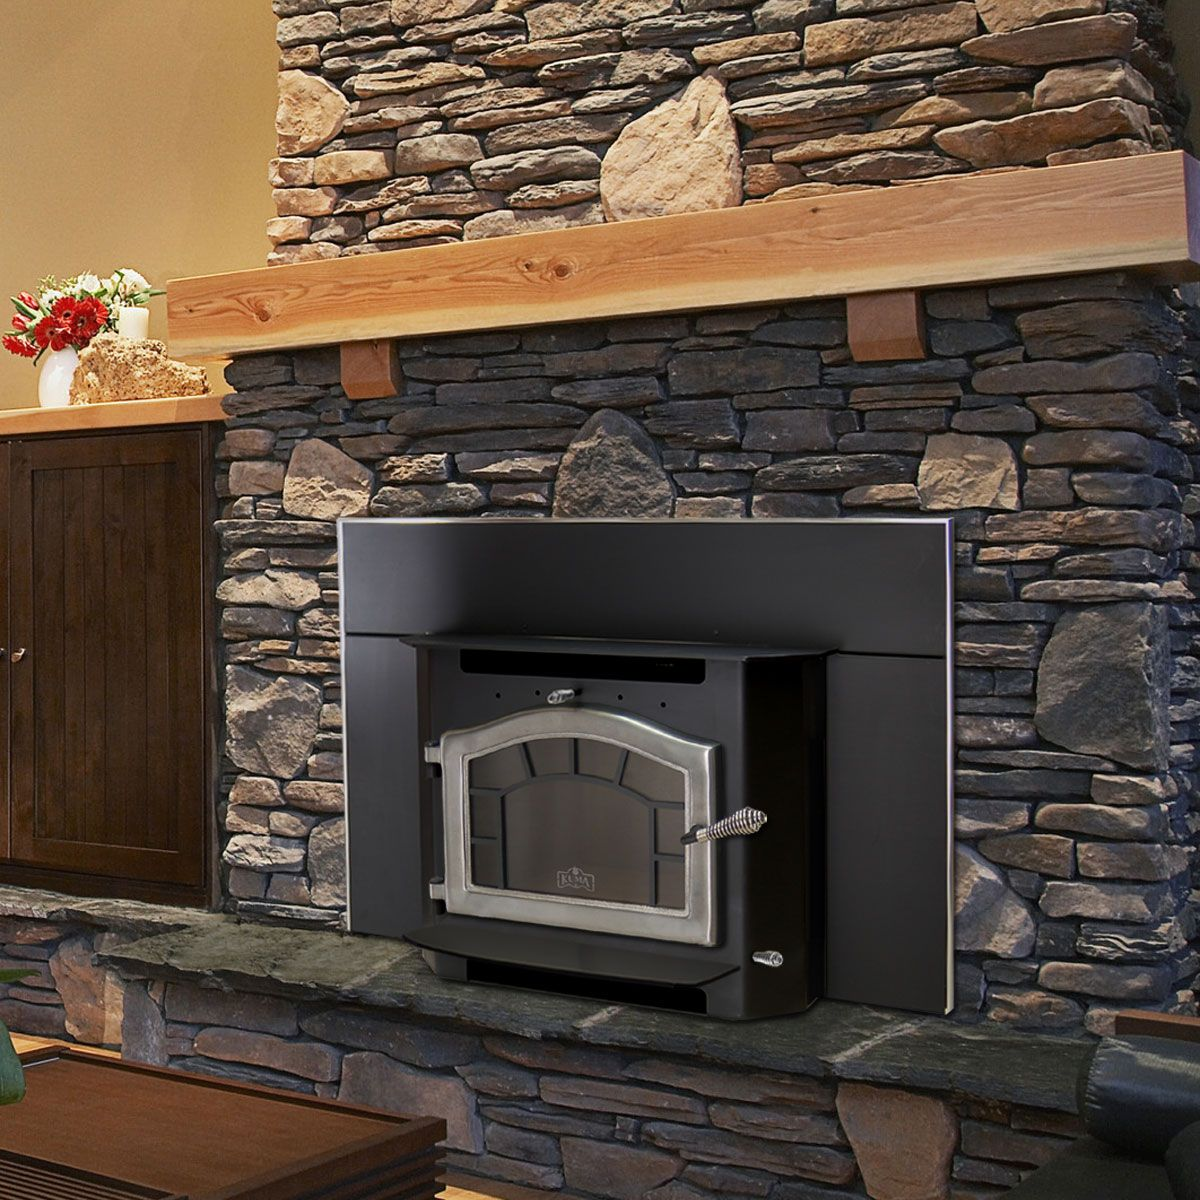 Pin By Ellen Butler On Sitting Room Wood Stove Fireplace Insert Wood Stove Fireplace Fireplace